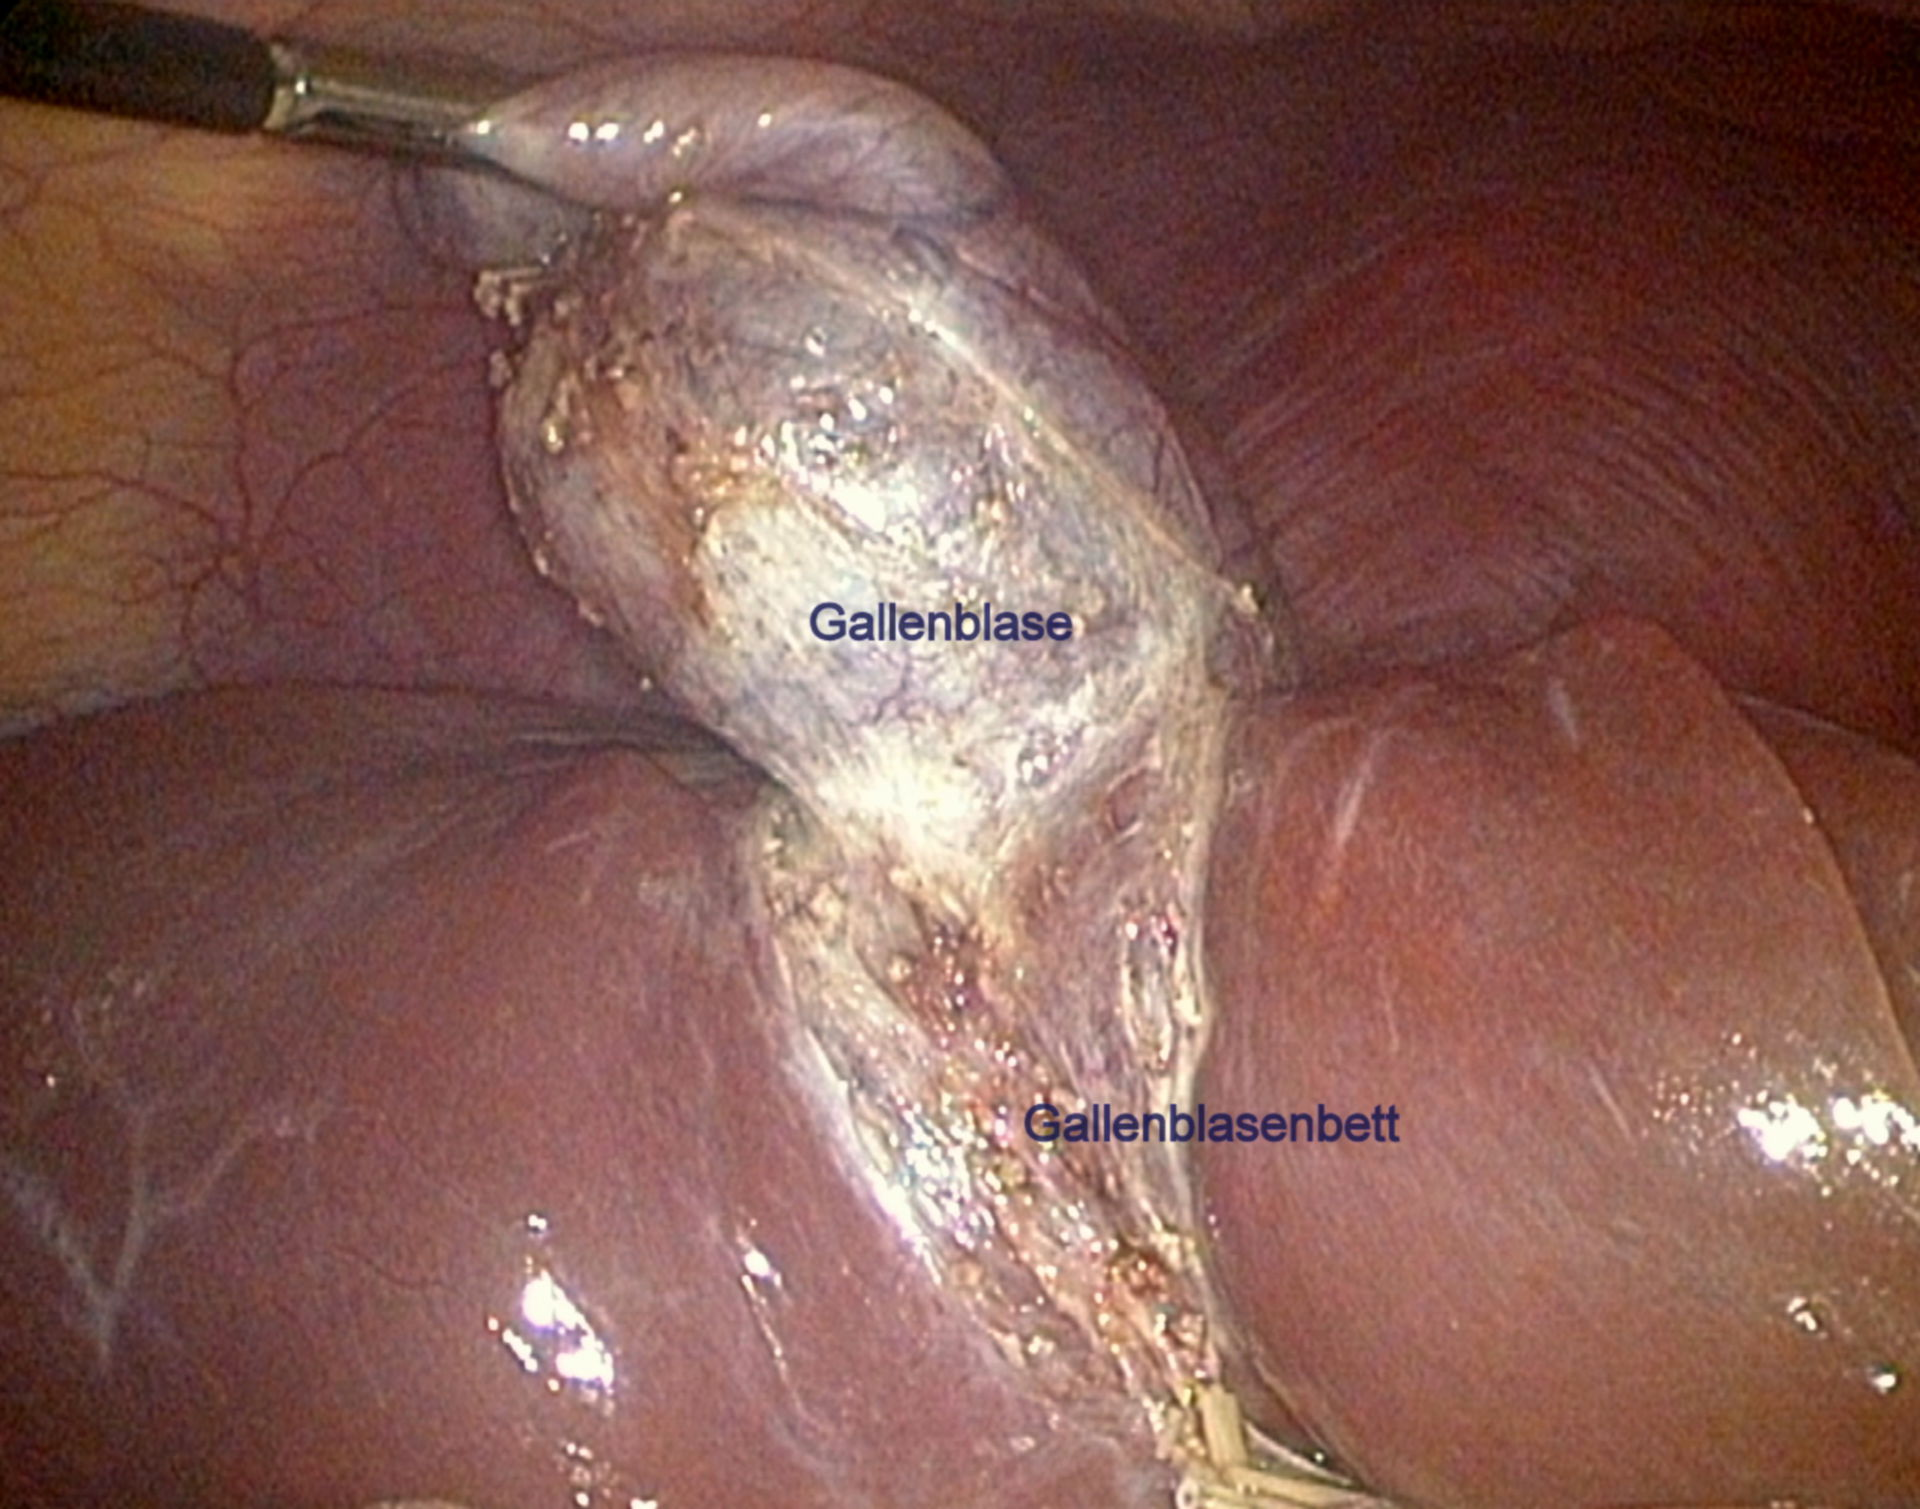 Gall bladder just before the removal